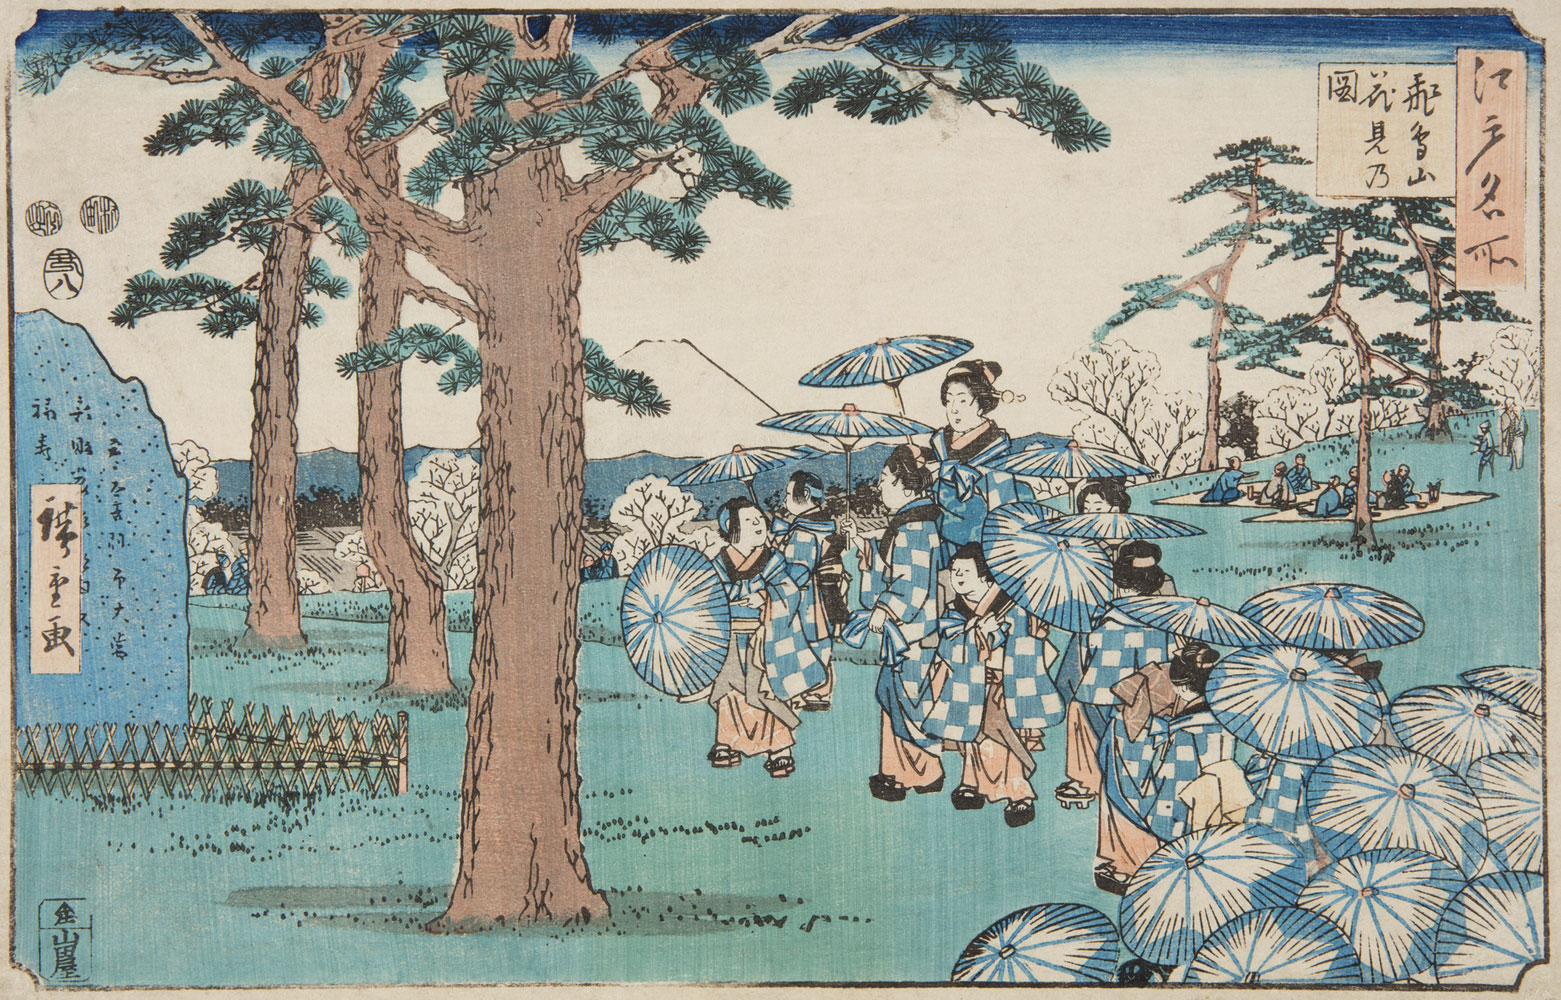 Japanese print of a large group of children and adult, all dressed in the same traditional clothes and holding umbrellas, they walk amongst the trees, picnickers sit under the trees in the background.